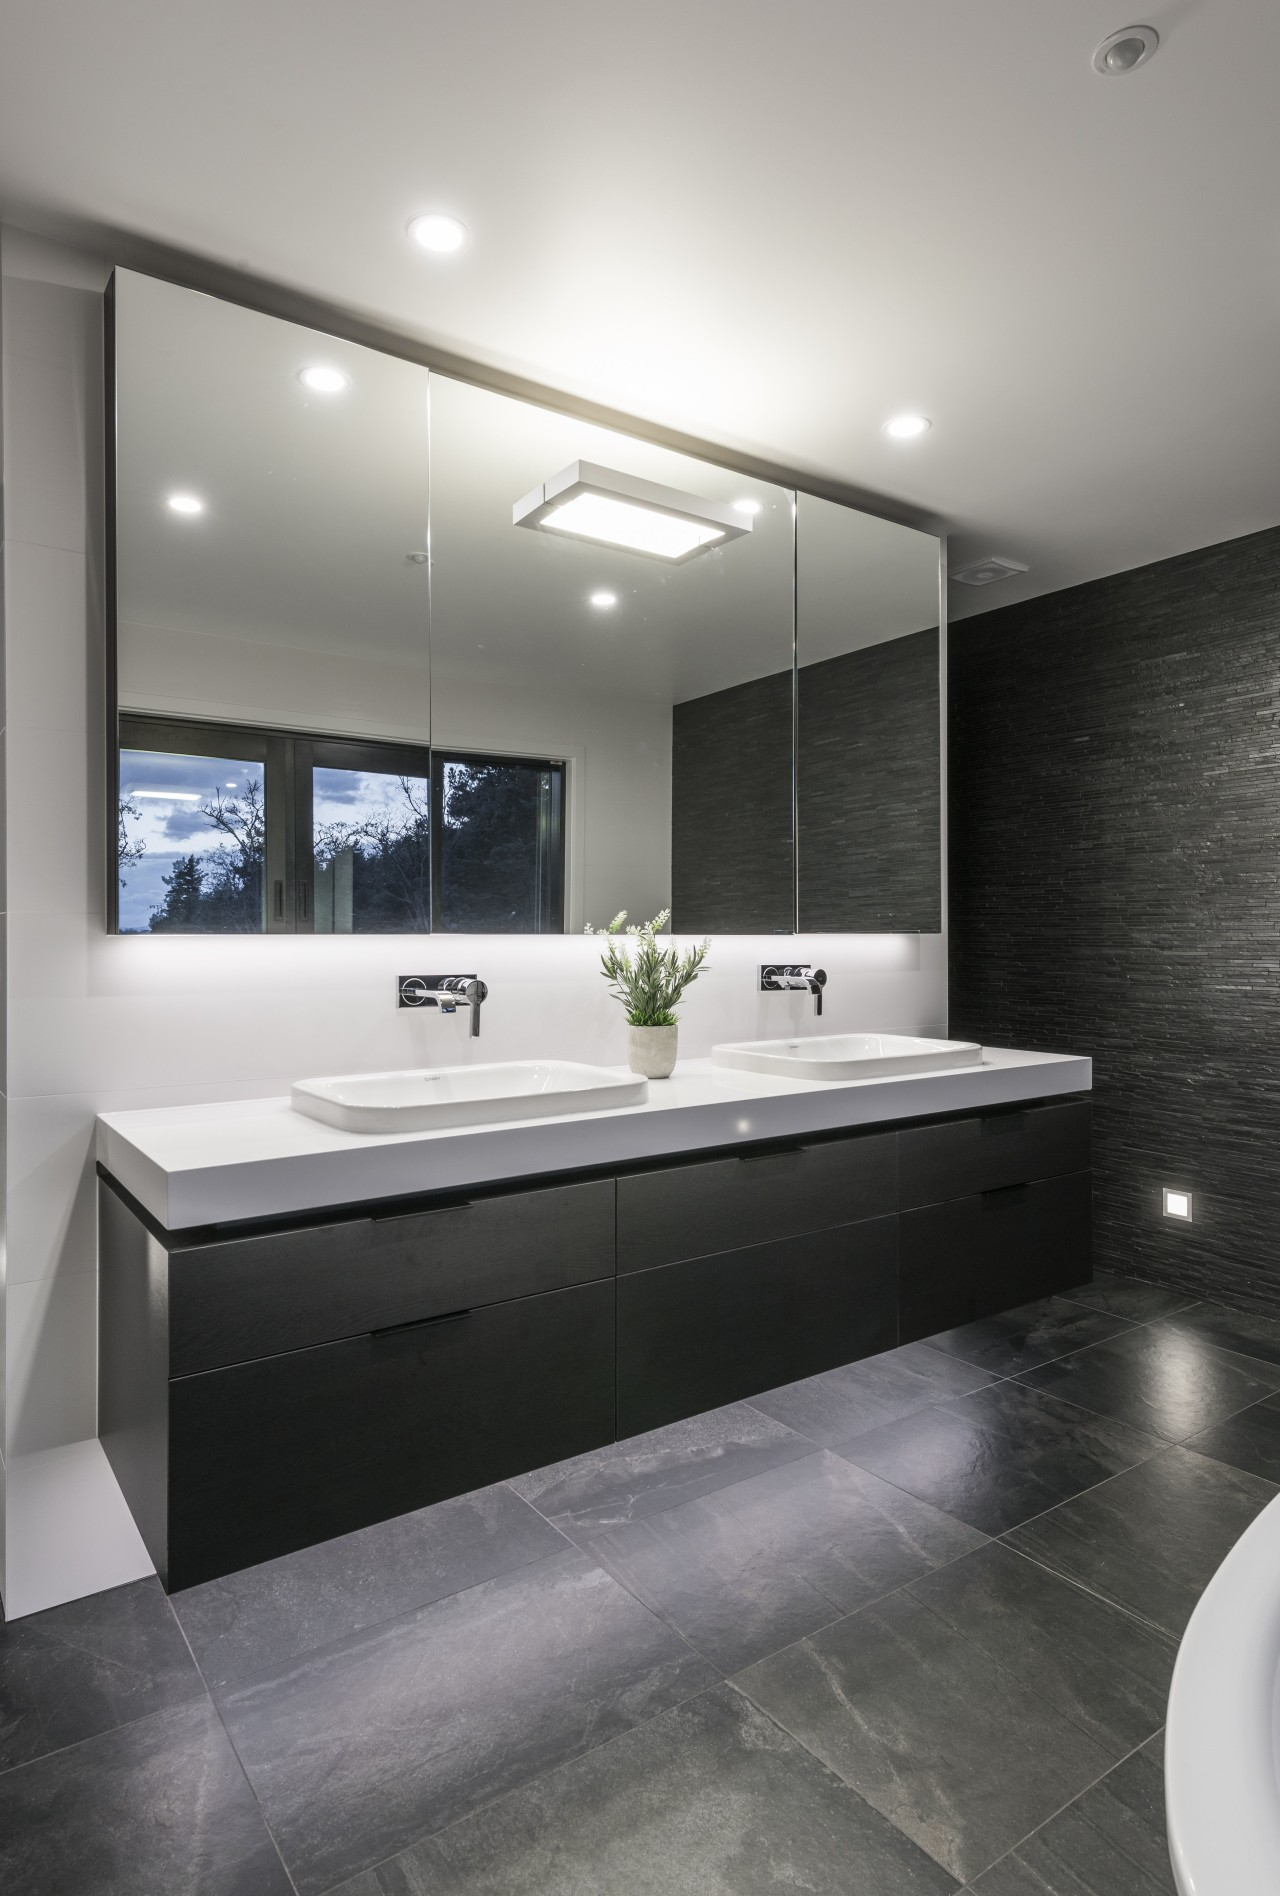 Under-vanity lighting highlights the stone-look flooring in this architecture, bathroom, ceiling, countertop, floor, interior design, product design, room, sink, gray, black